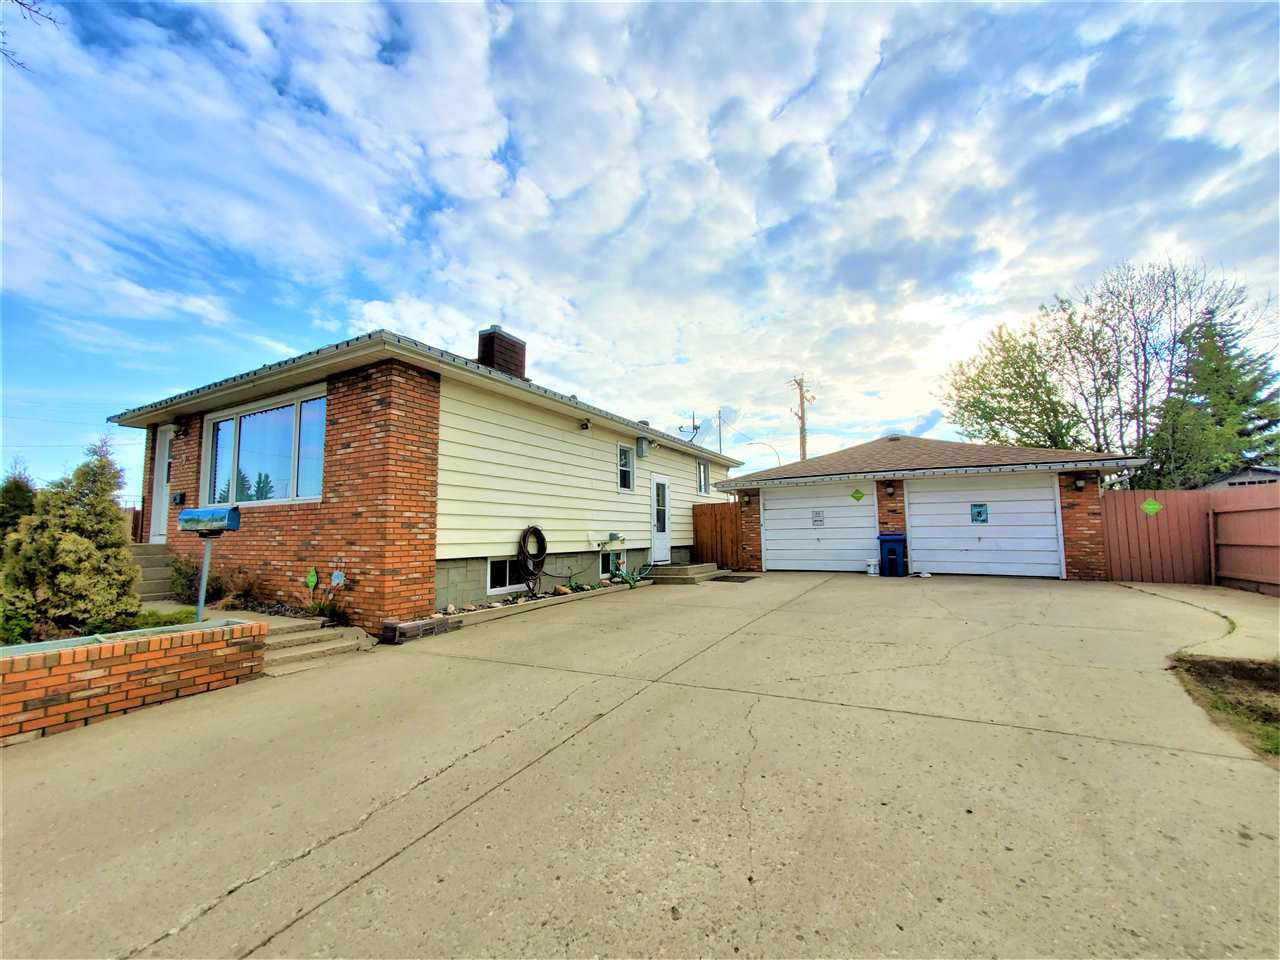 Main Photo: 4002 55 Street: Wetaskiwin House for sale : MLS®# E4198090